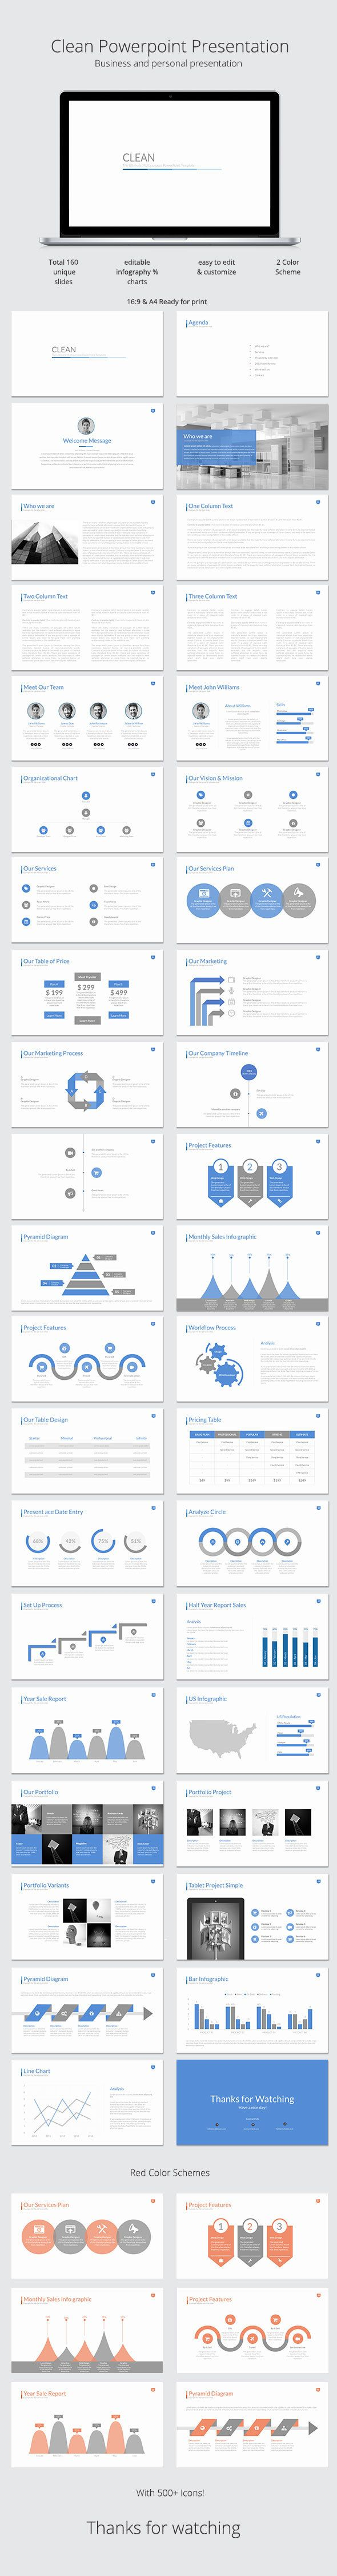 Coolmathgamesus  Inspiring  Ideas About Powerpoint Presentations On Pinterest With Remarkable Clean Powerpoint Template With Divine Flower Powerpoint Background Also Slide Backgrounds Powerpoint In Addition Simple Powerpoint Slides And Powerpoint  Insert Youtube Video As Well As Microsoft Powerpoint  Free Download Trial Version Additionally Alliteration Powerpoint Ks From Pinterestcom With Coolmathgamesus  Remarkable  Ideas About Powerpoint Presentations On Pinterest With Divine Clean Powerpoint Template And Inspiring Flower Powerpoint Background Also Slide Backgrounds Powerpoint In Addition Simple Powerpoint Slides From Pinterestcom